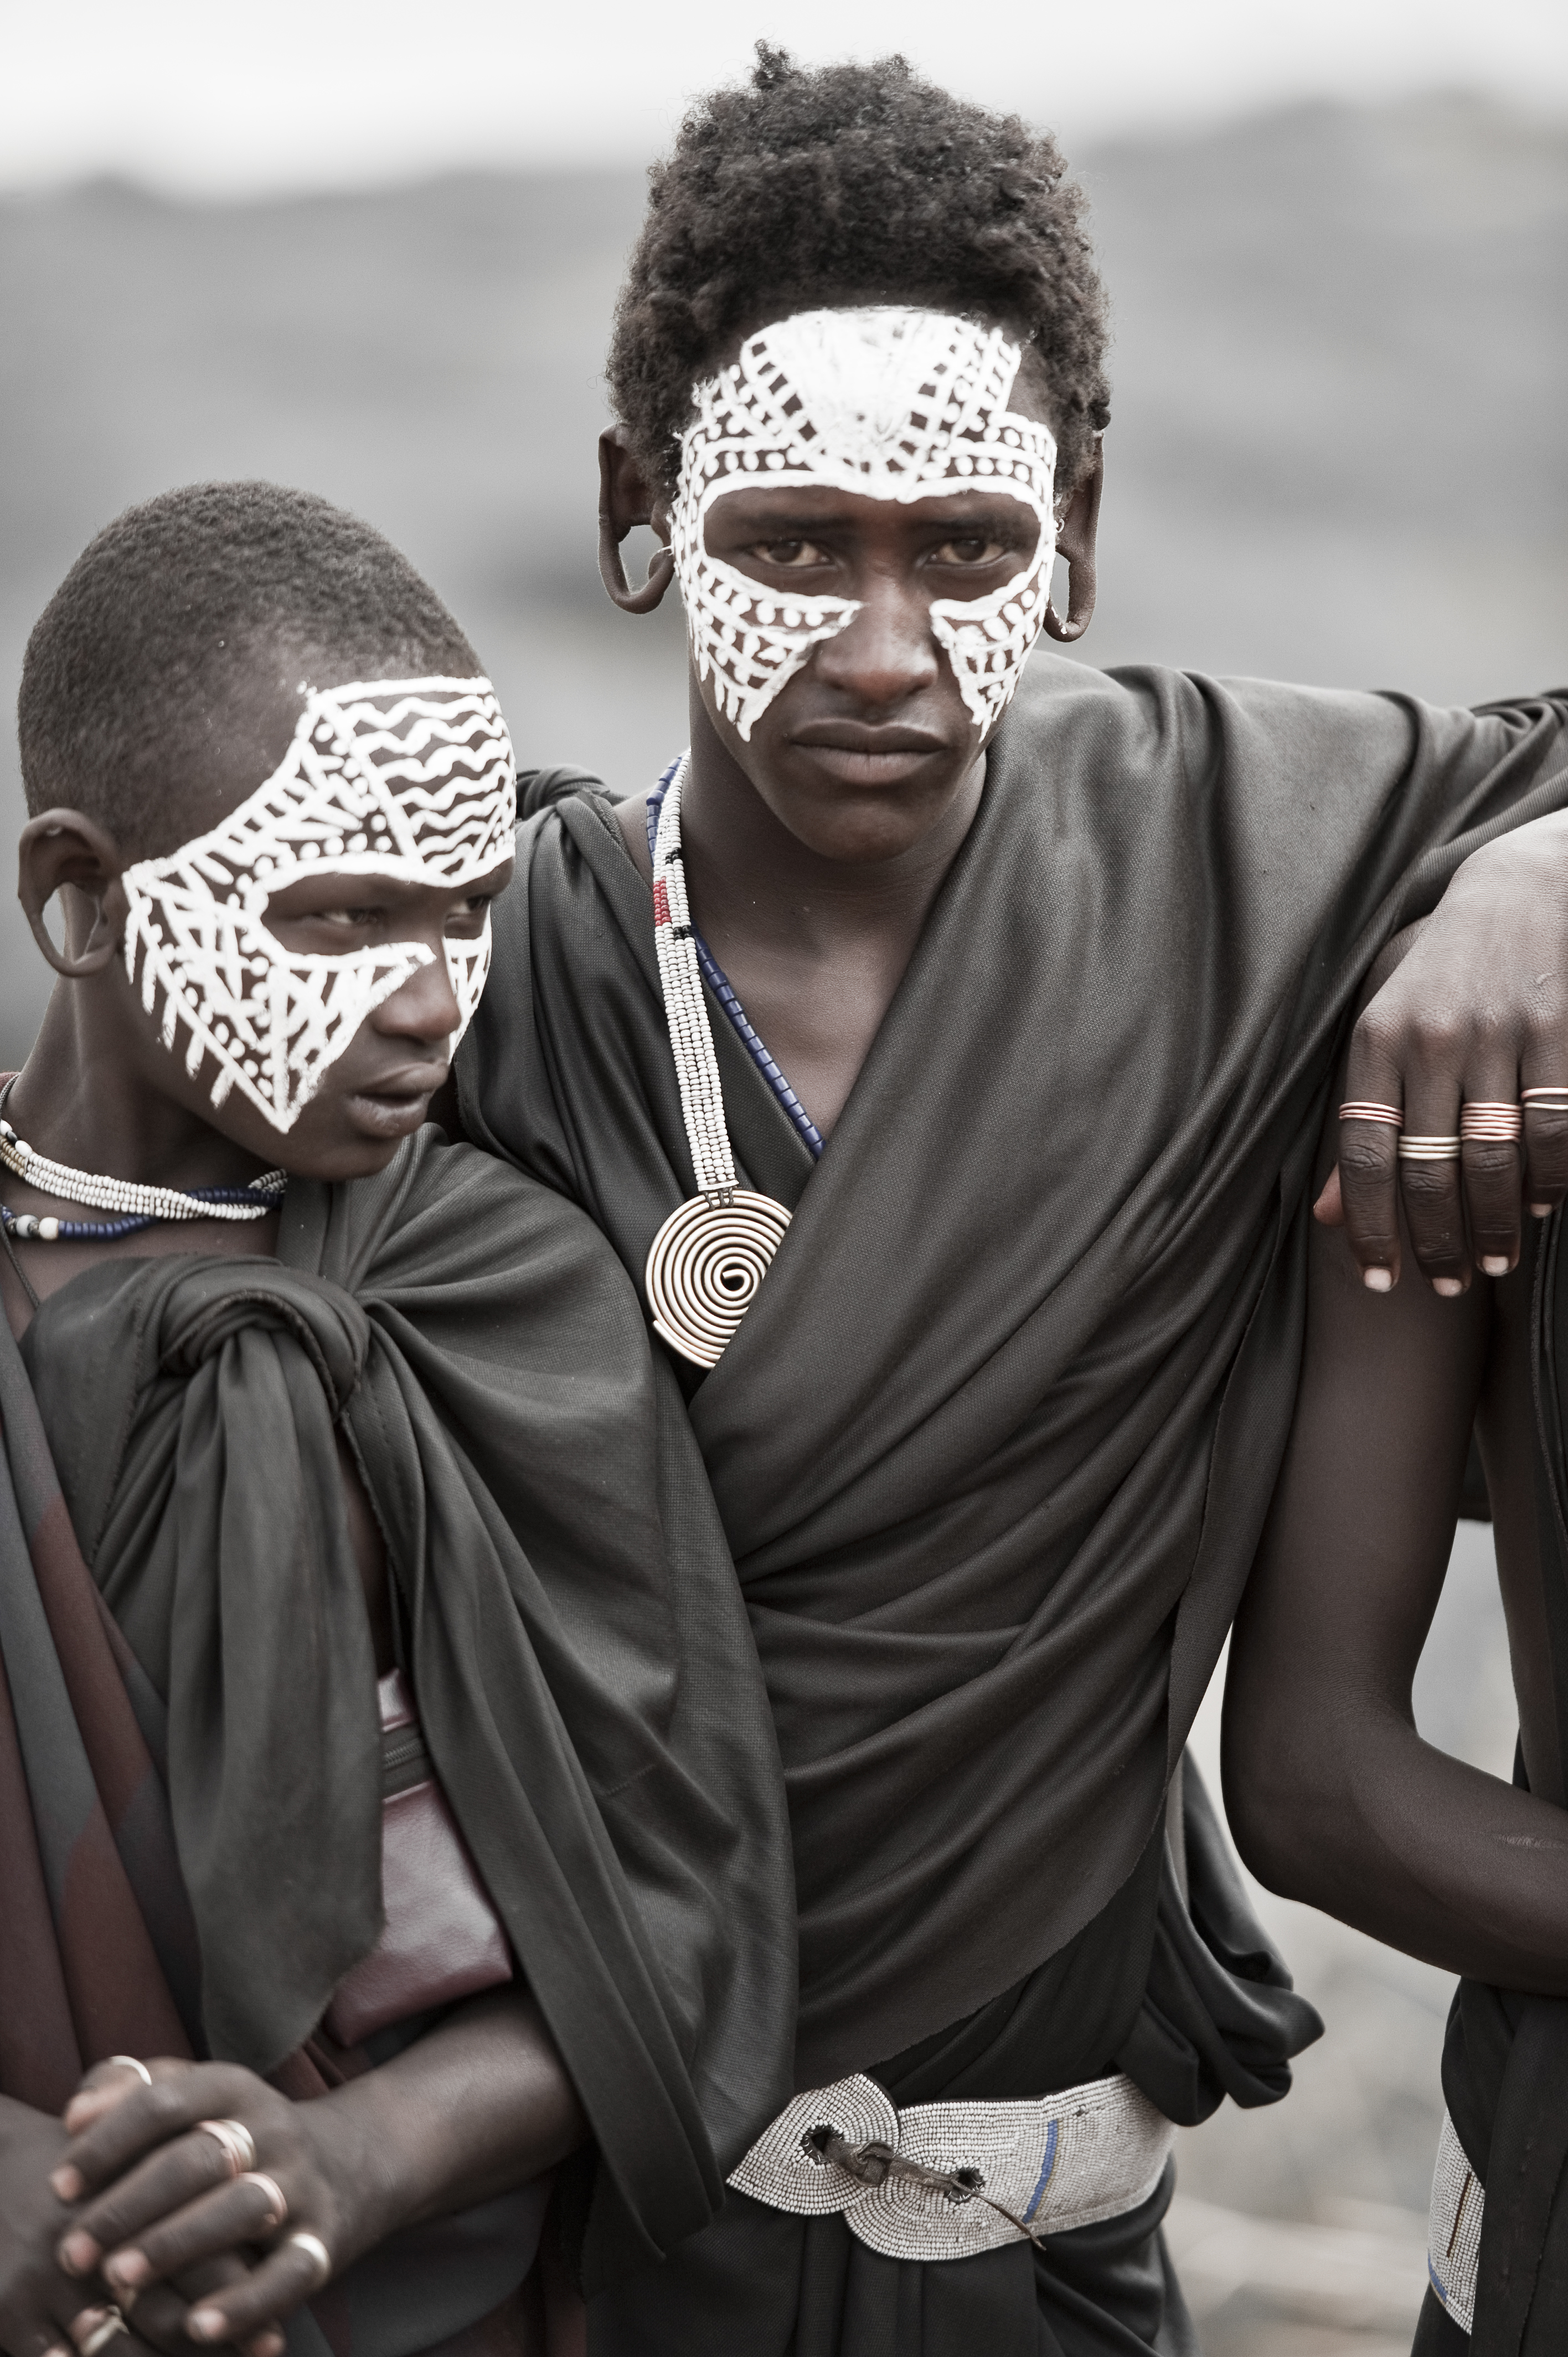 Young Masai Warrior, Toned